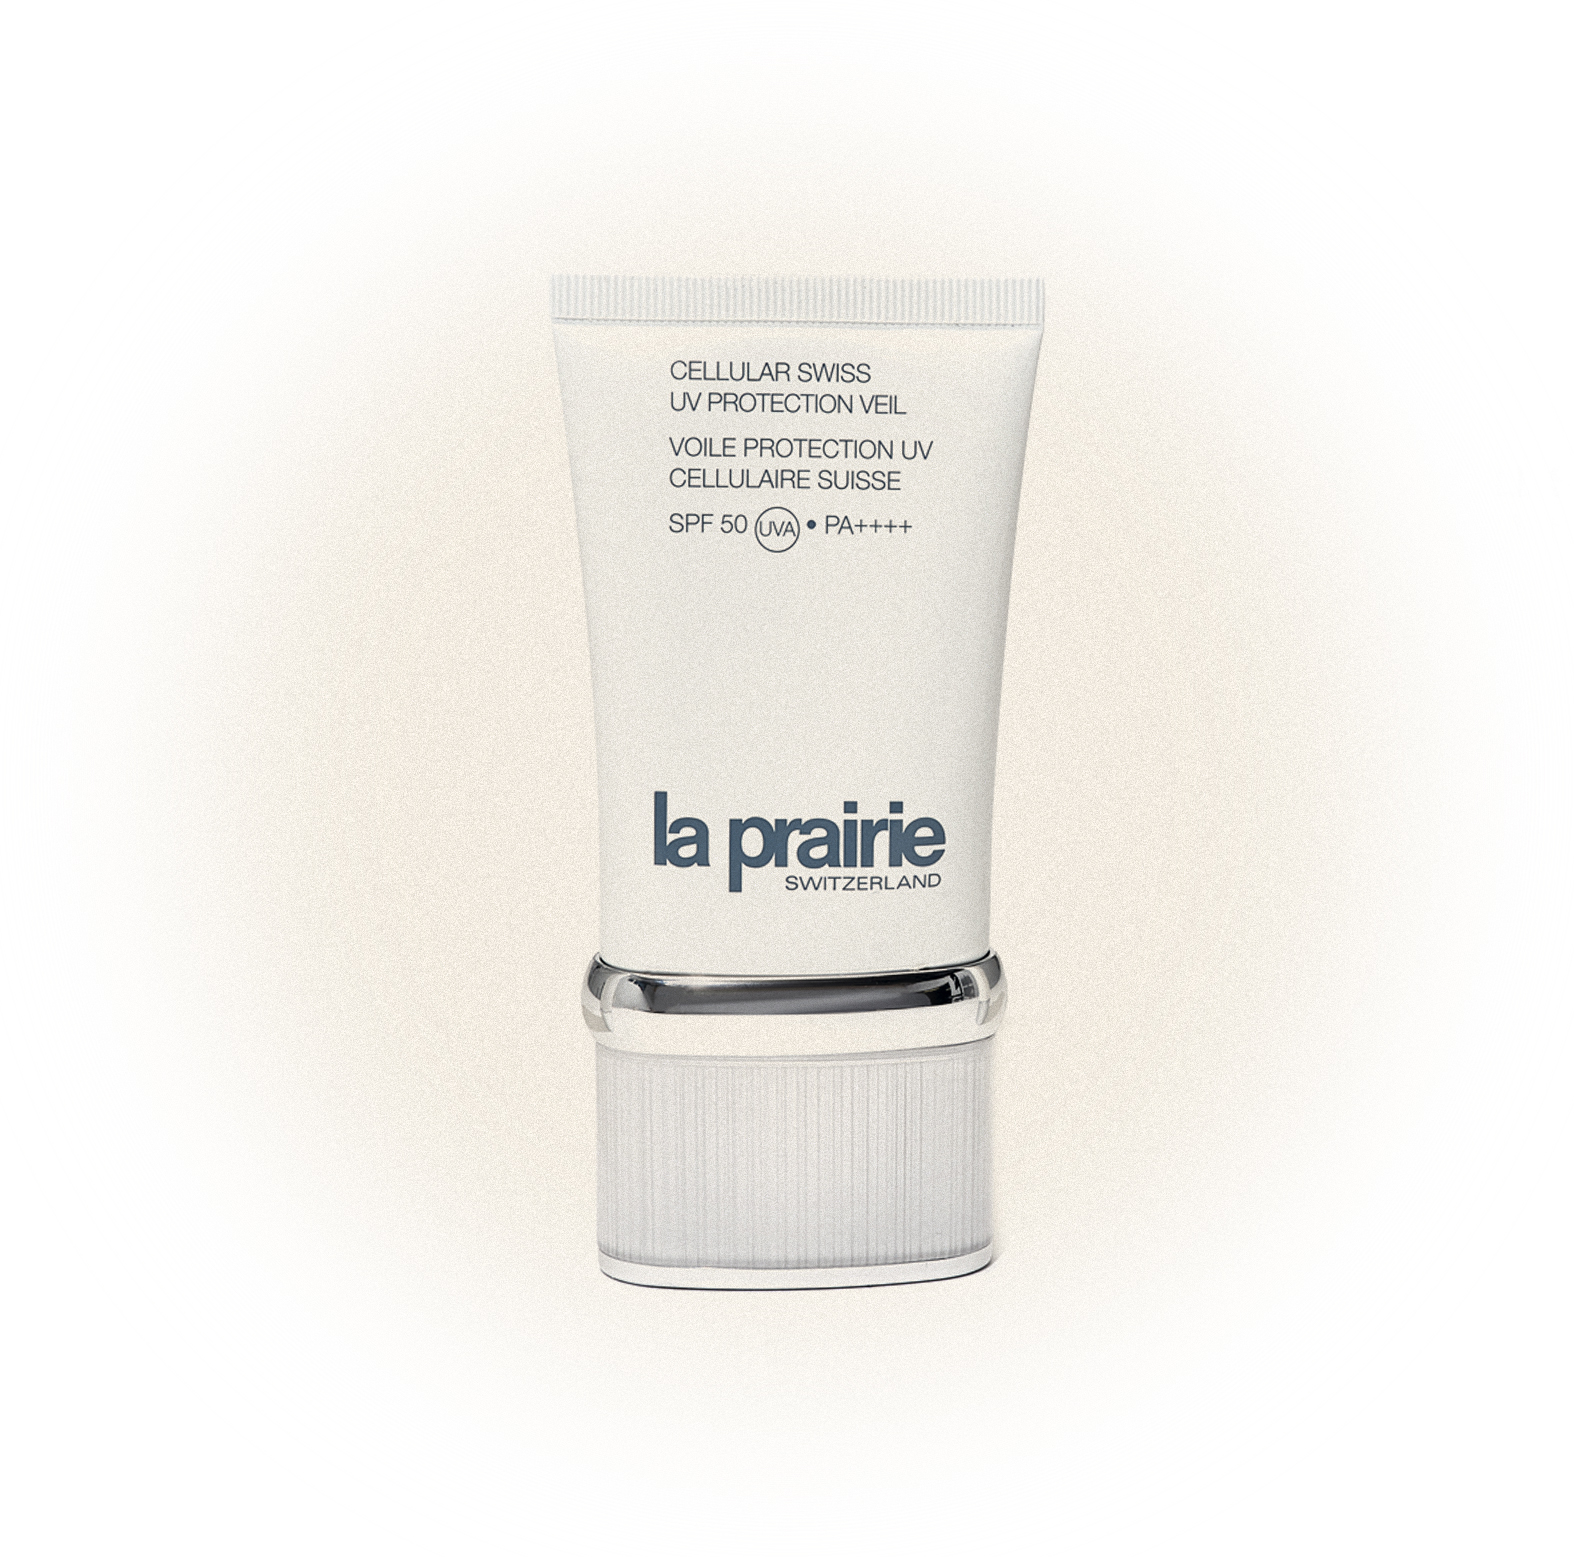 UV Protection Veil SPF 50 PA++++, La Prairie